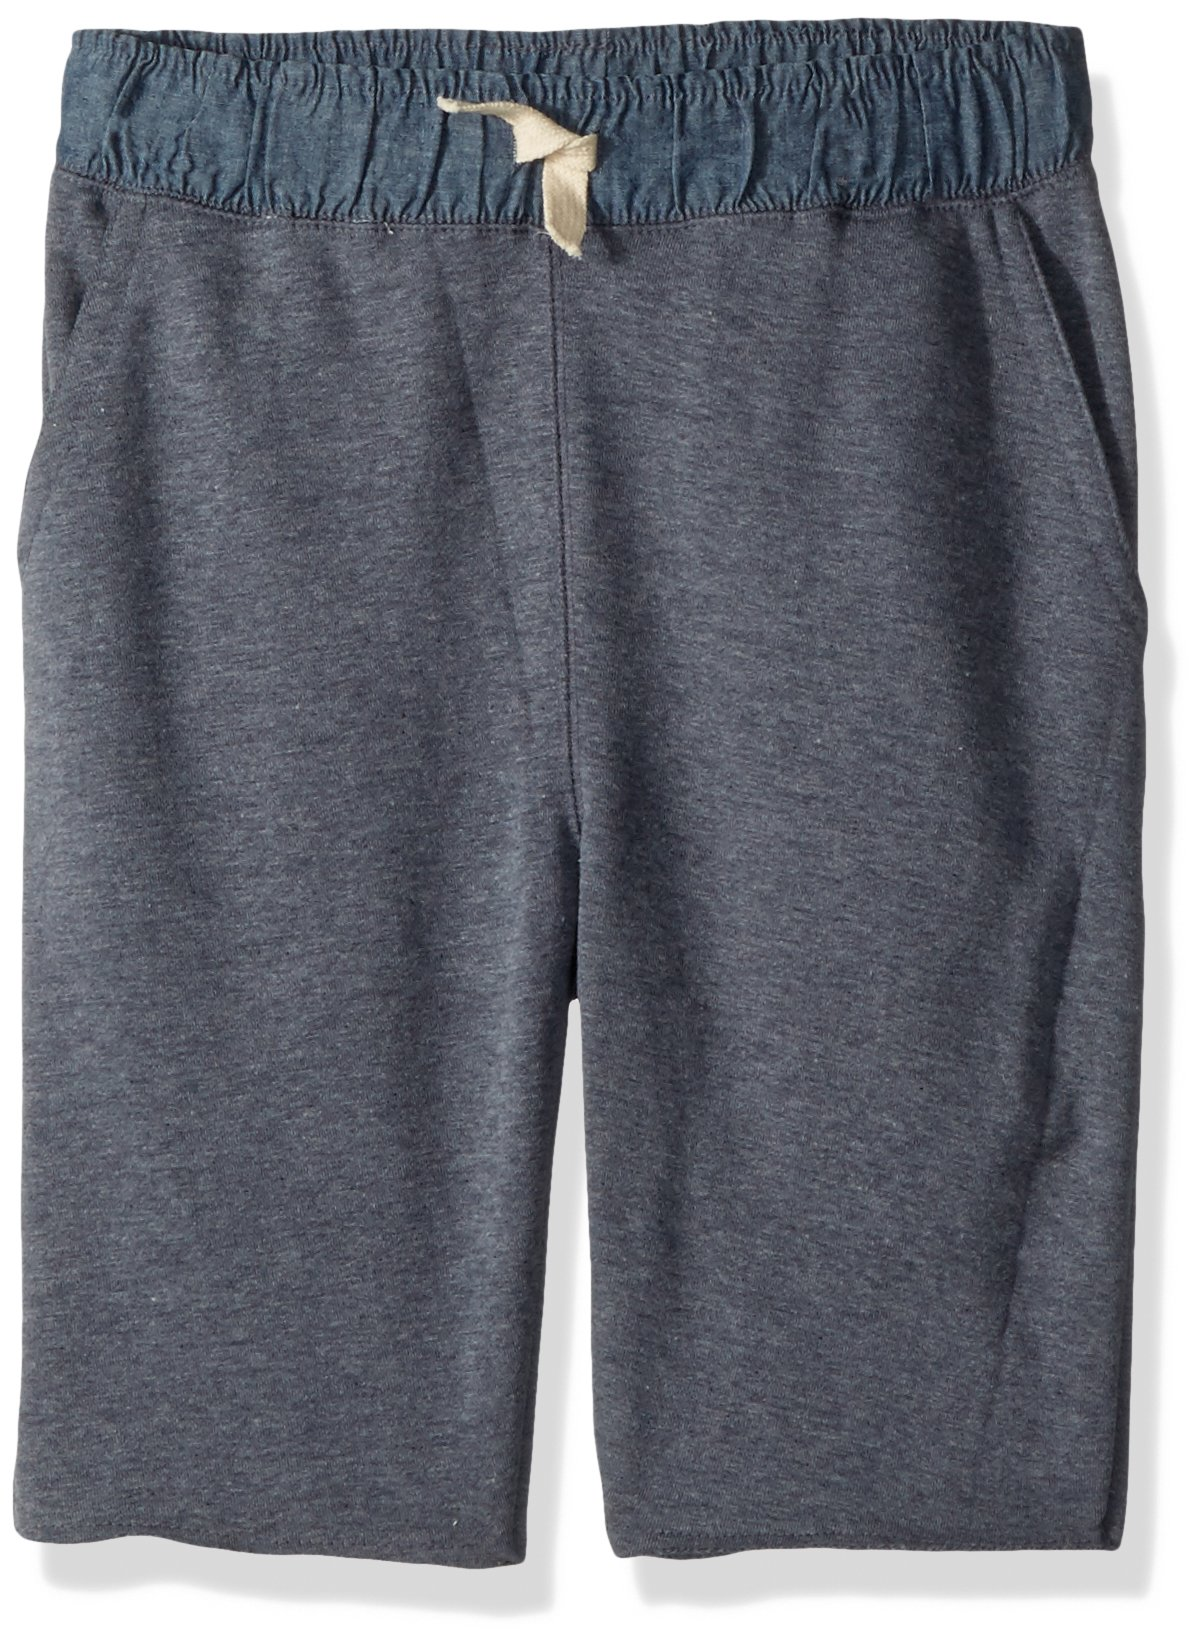 Lucky Brand Big Boys' Pull on Shorts, French Terry Peacoat, Medium (10/12)